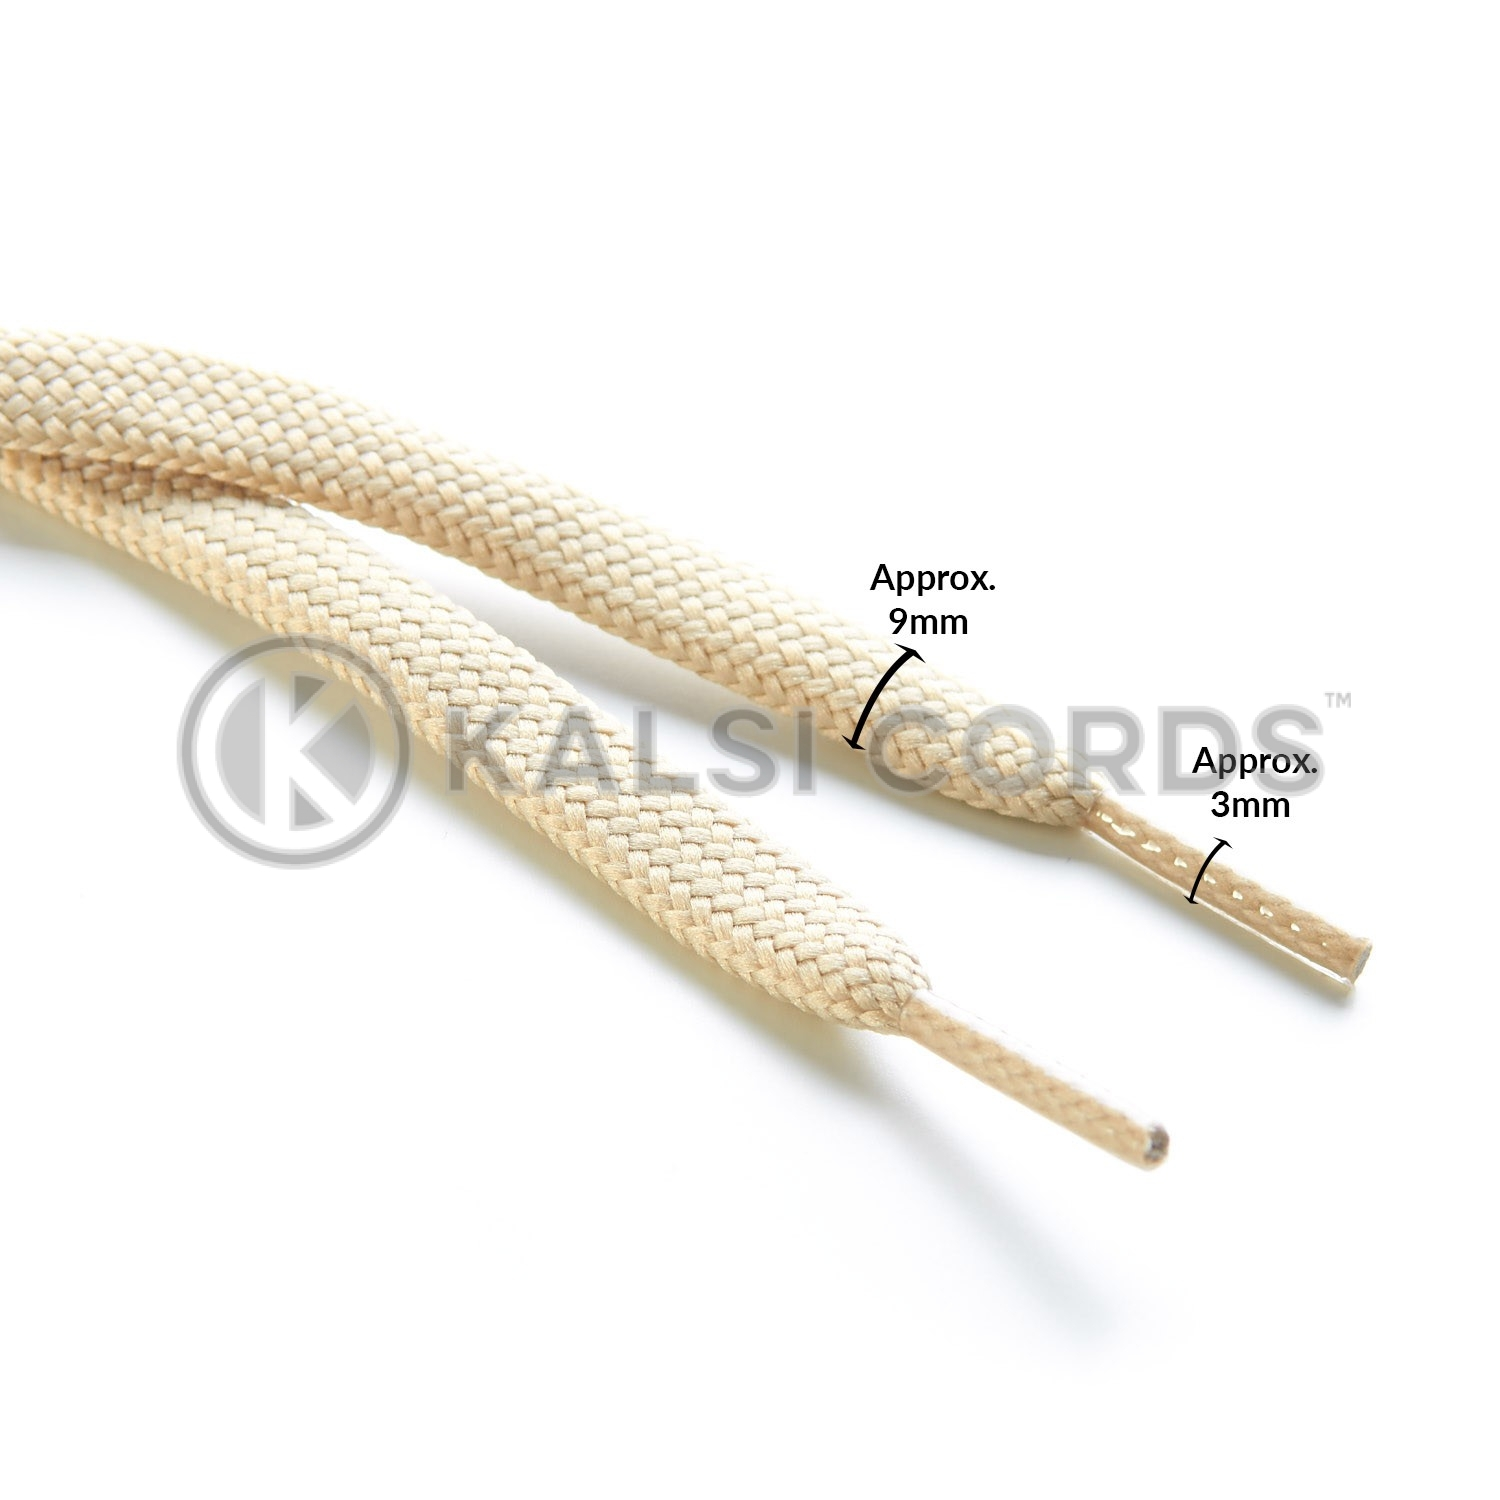 9mm Flat Shoe Laces Tubular Cream PG932 Sports Trainers Boots Footwear Drawstring Drawcord